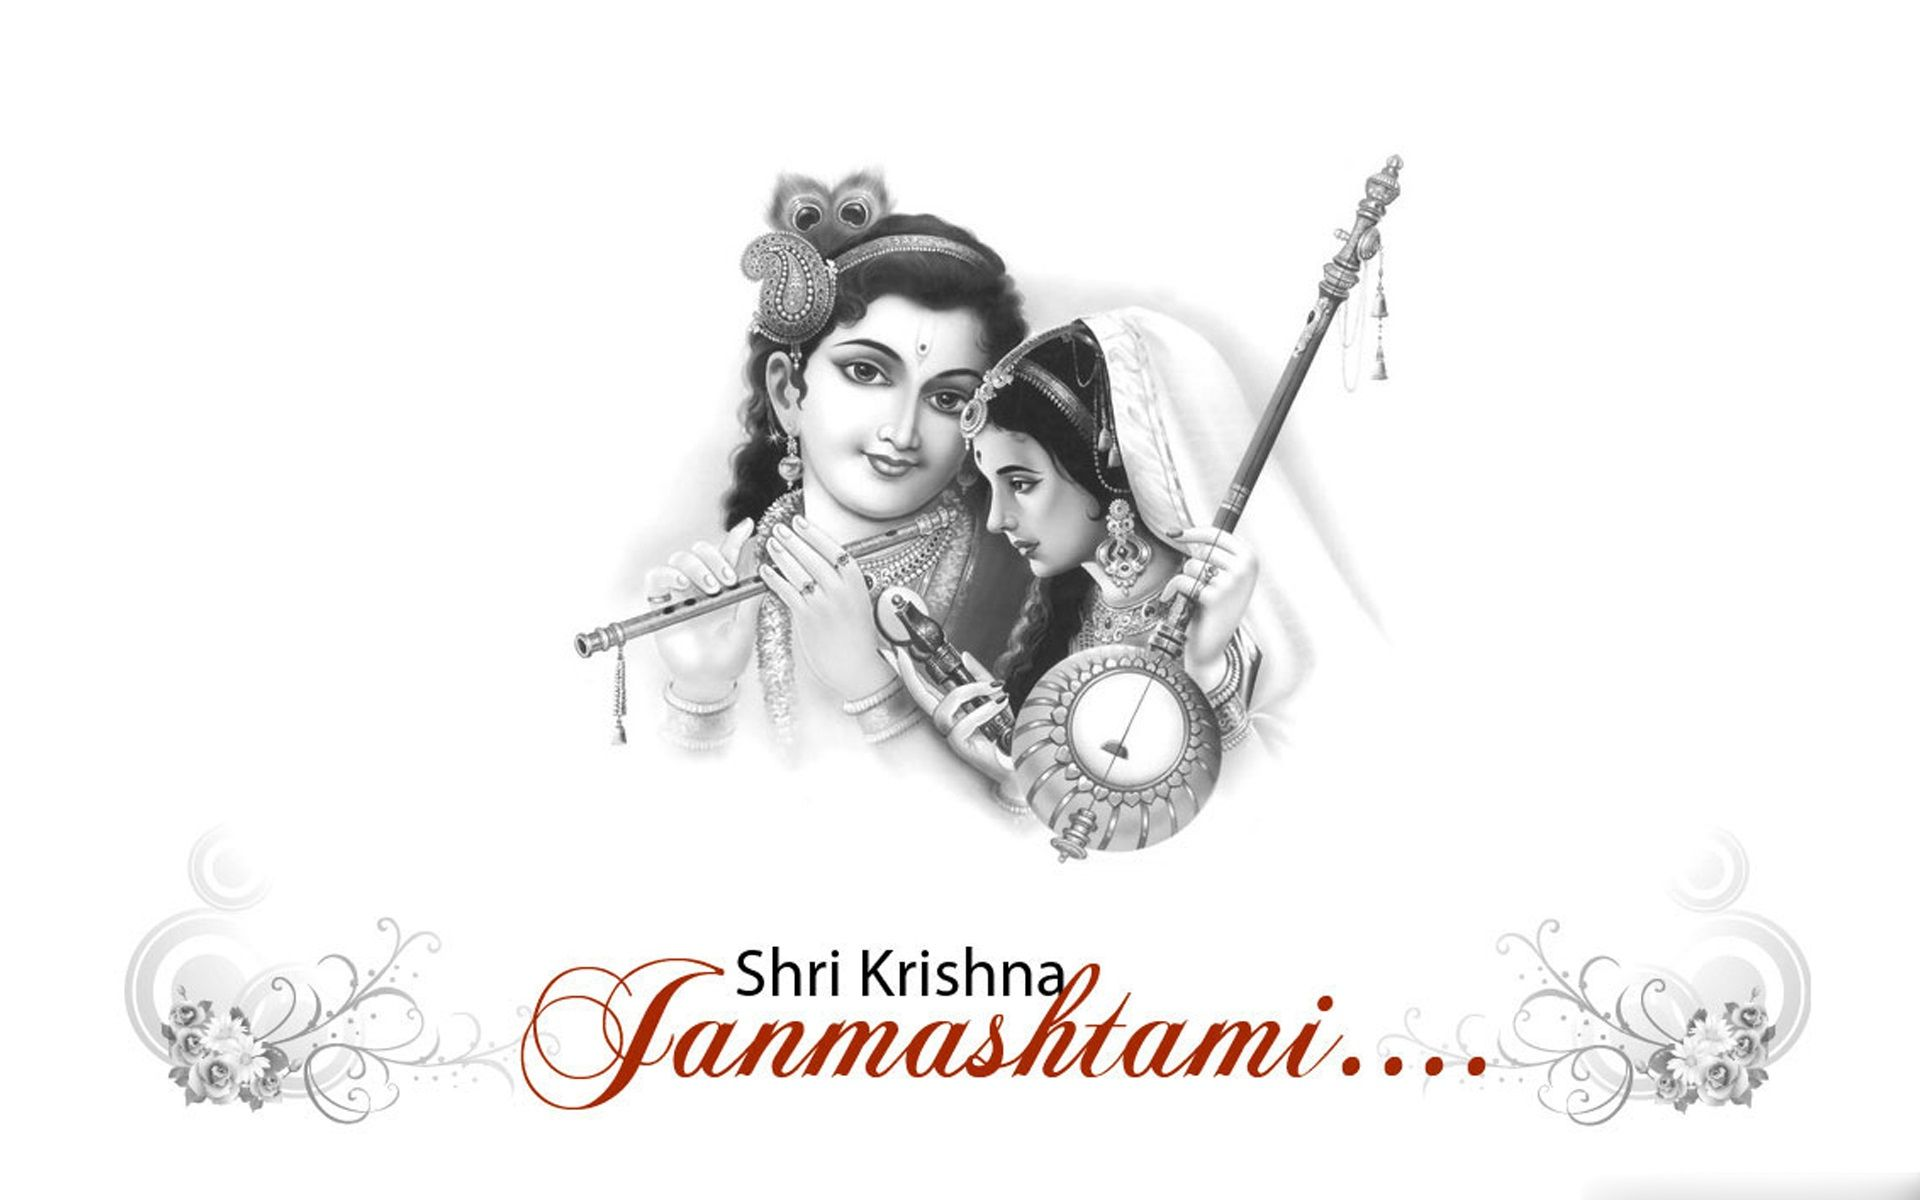 Free Download 100 Pure Janmashtami Hd Wallpapers Latest Photoshoots Beautiful Images And More F Happy Janmashtami Krishna Janmashtami Janmashtami Wallpapers